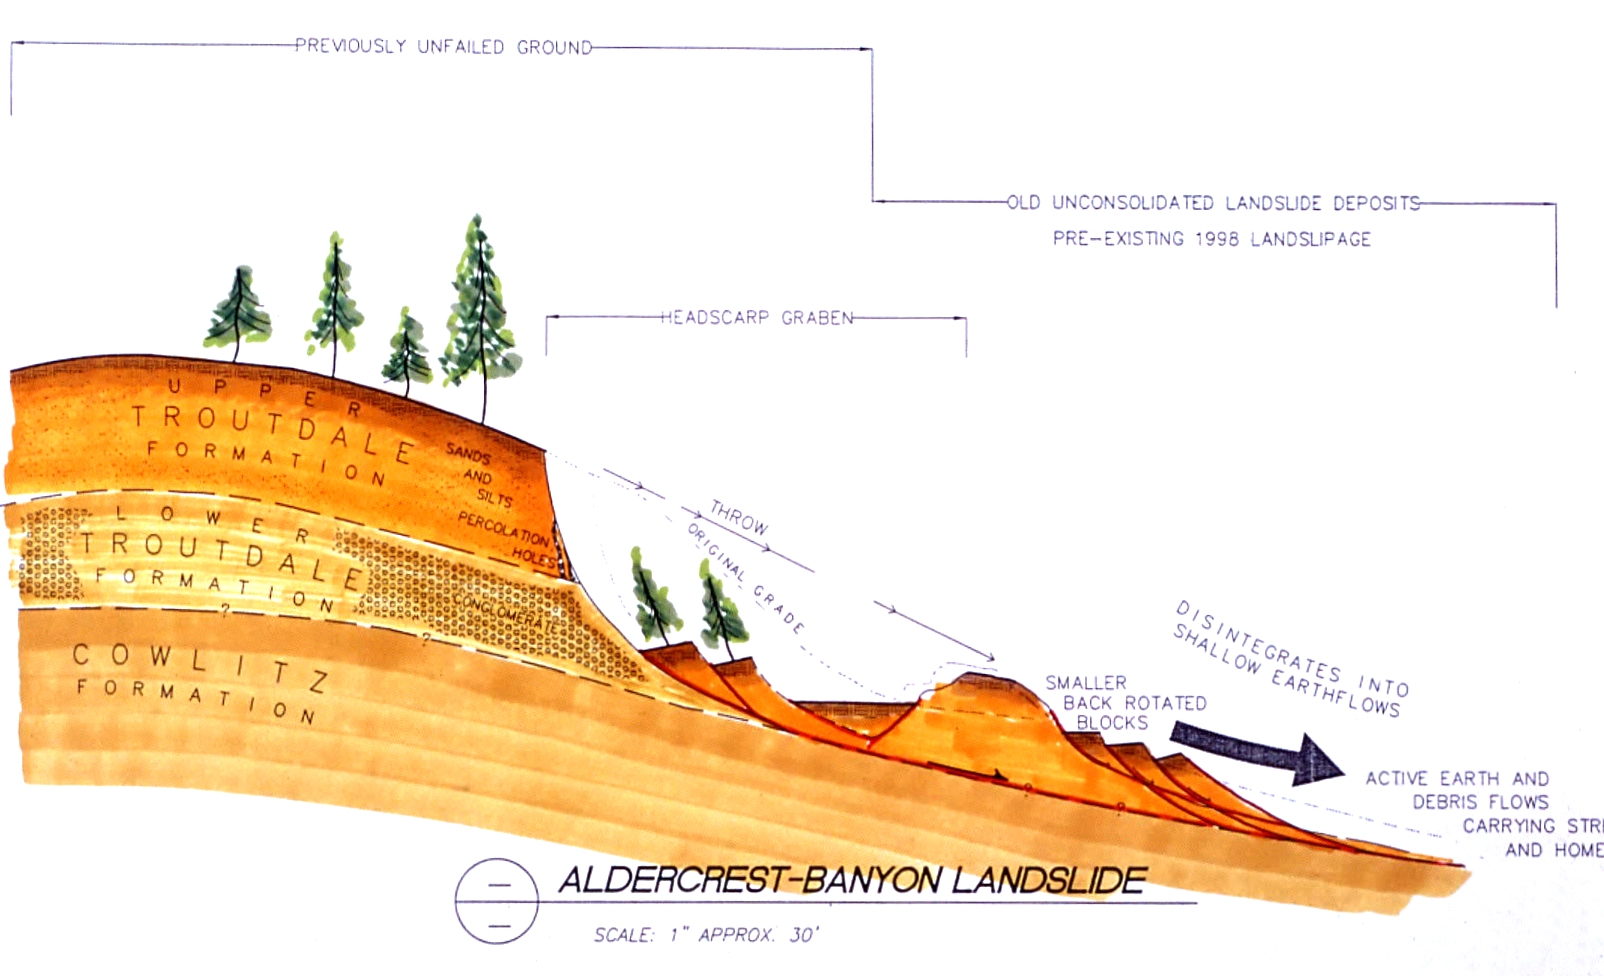 Geologic formations associated with the Aldercrest Banyon Landslide, image from Dr. J David Rogers